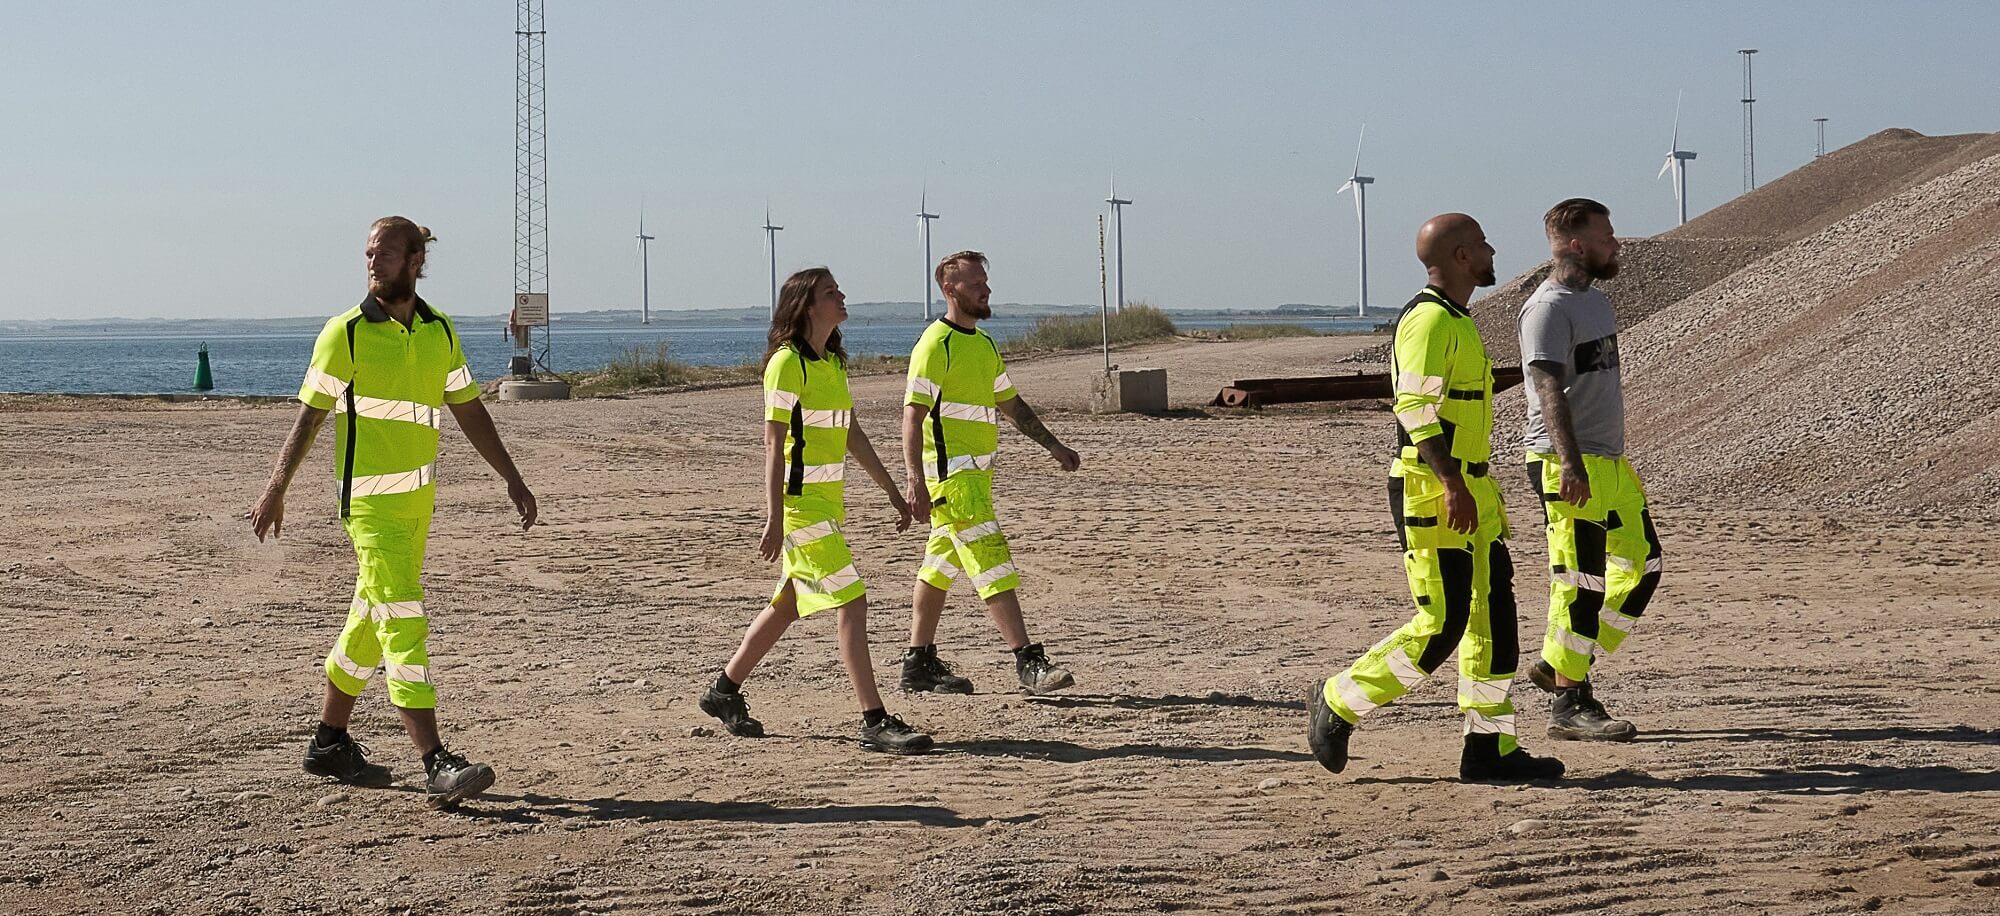 MASCOT® ACCELERATE SAFE Hi-vis Clothing - Offshore and wind sector